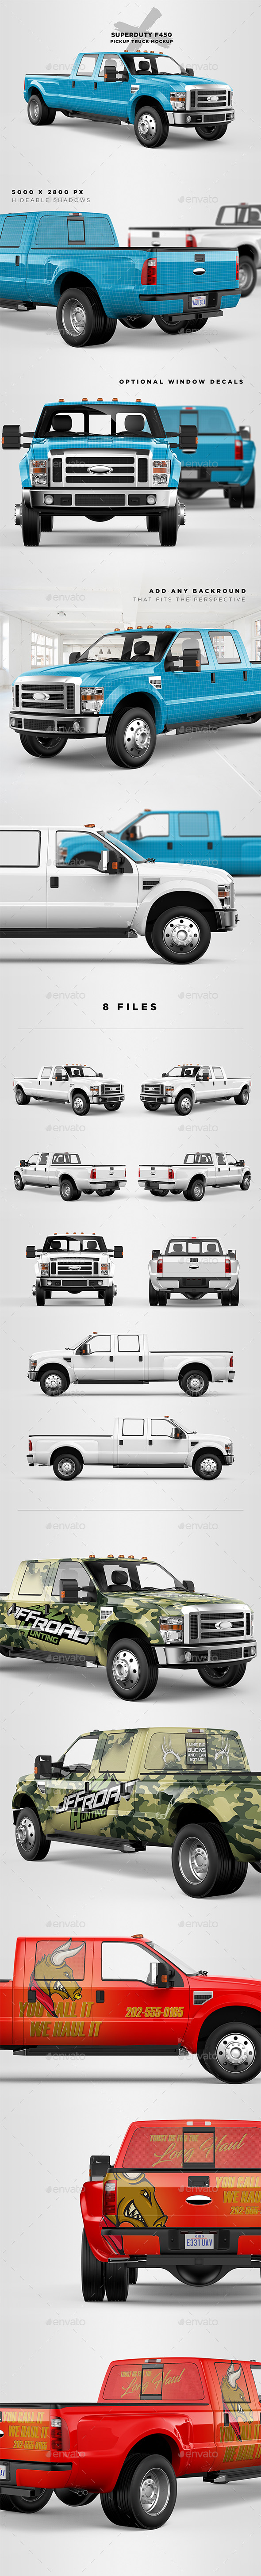 F450 Super Duty Truck Mockup - Vehicle Wraps Print